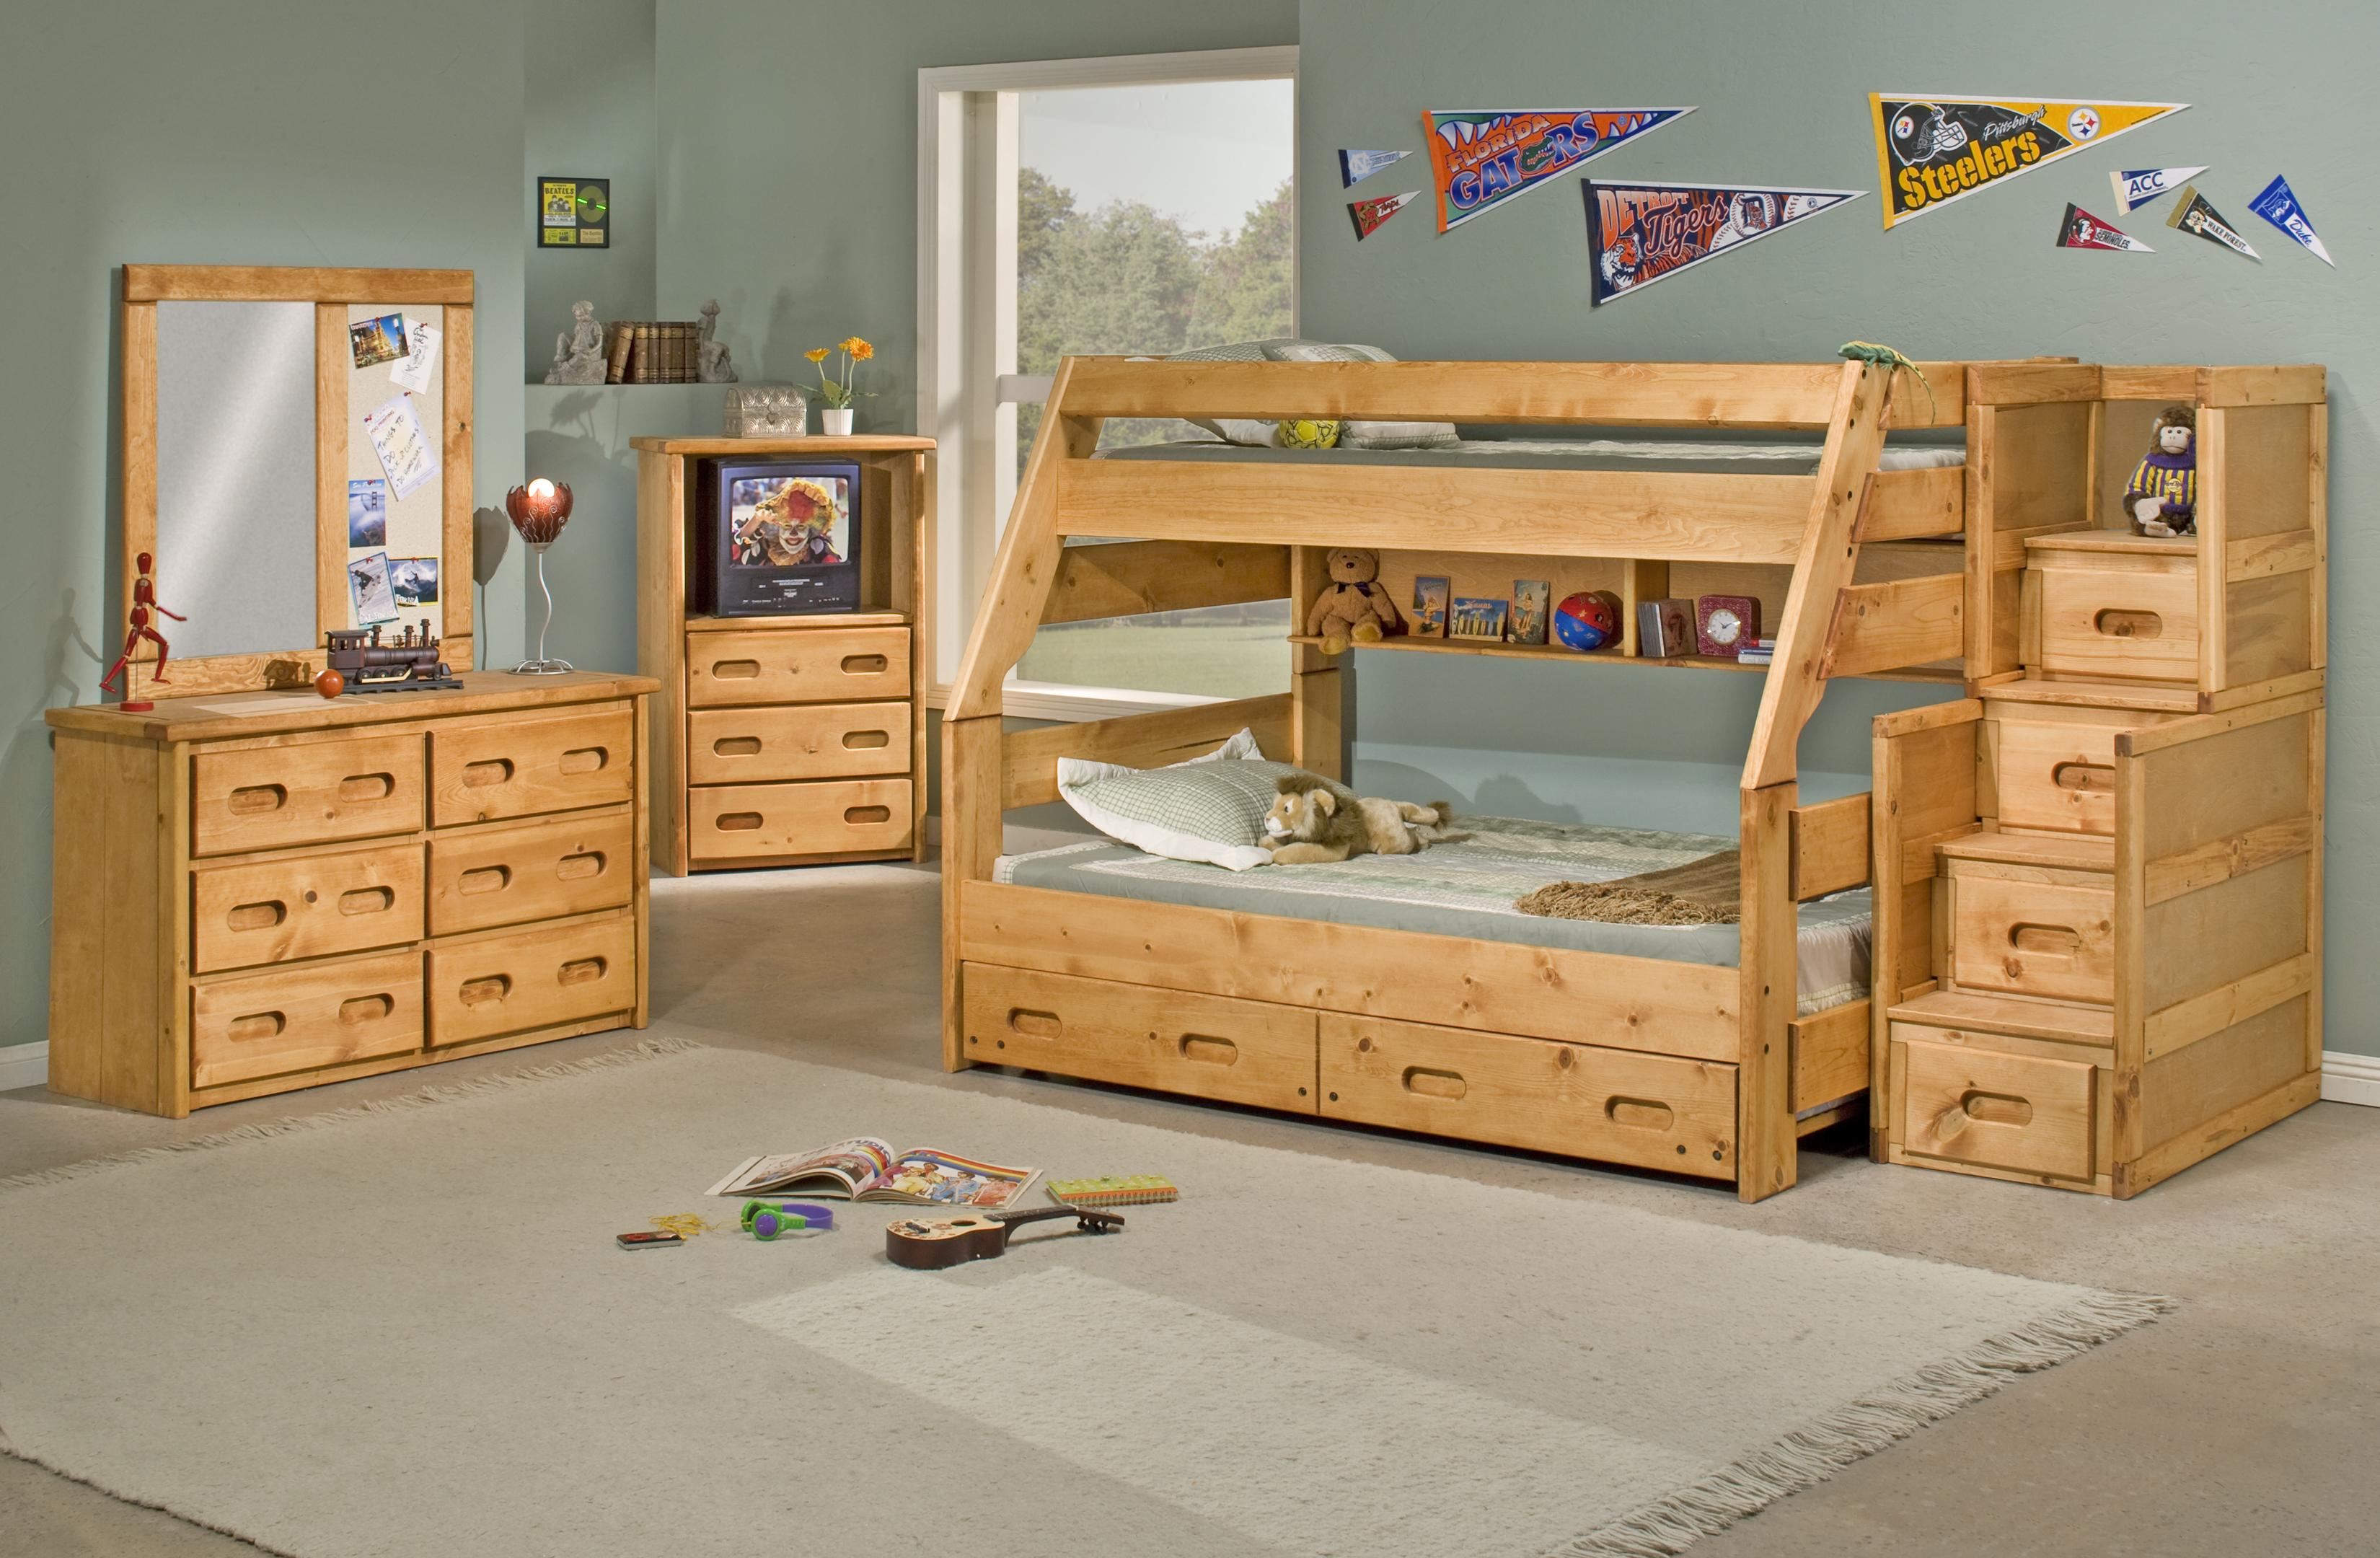 Trendwood Bunkhouse Twin Twin Wrangler Bunk Bed with Storage